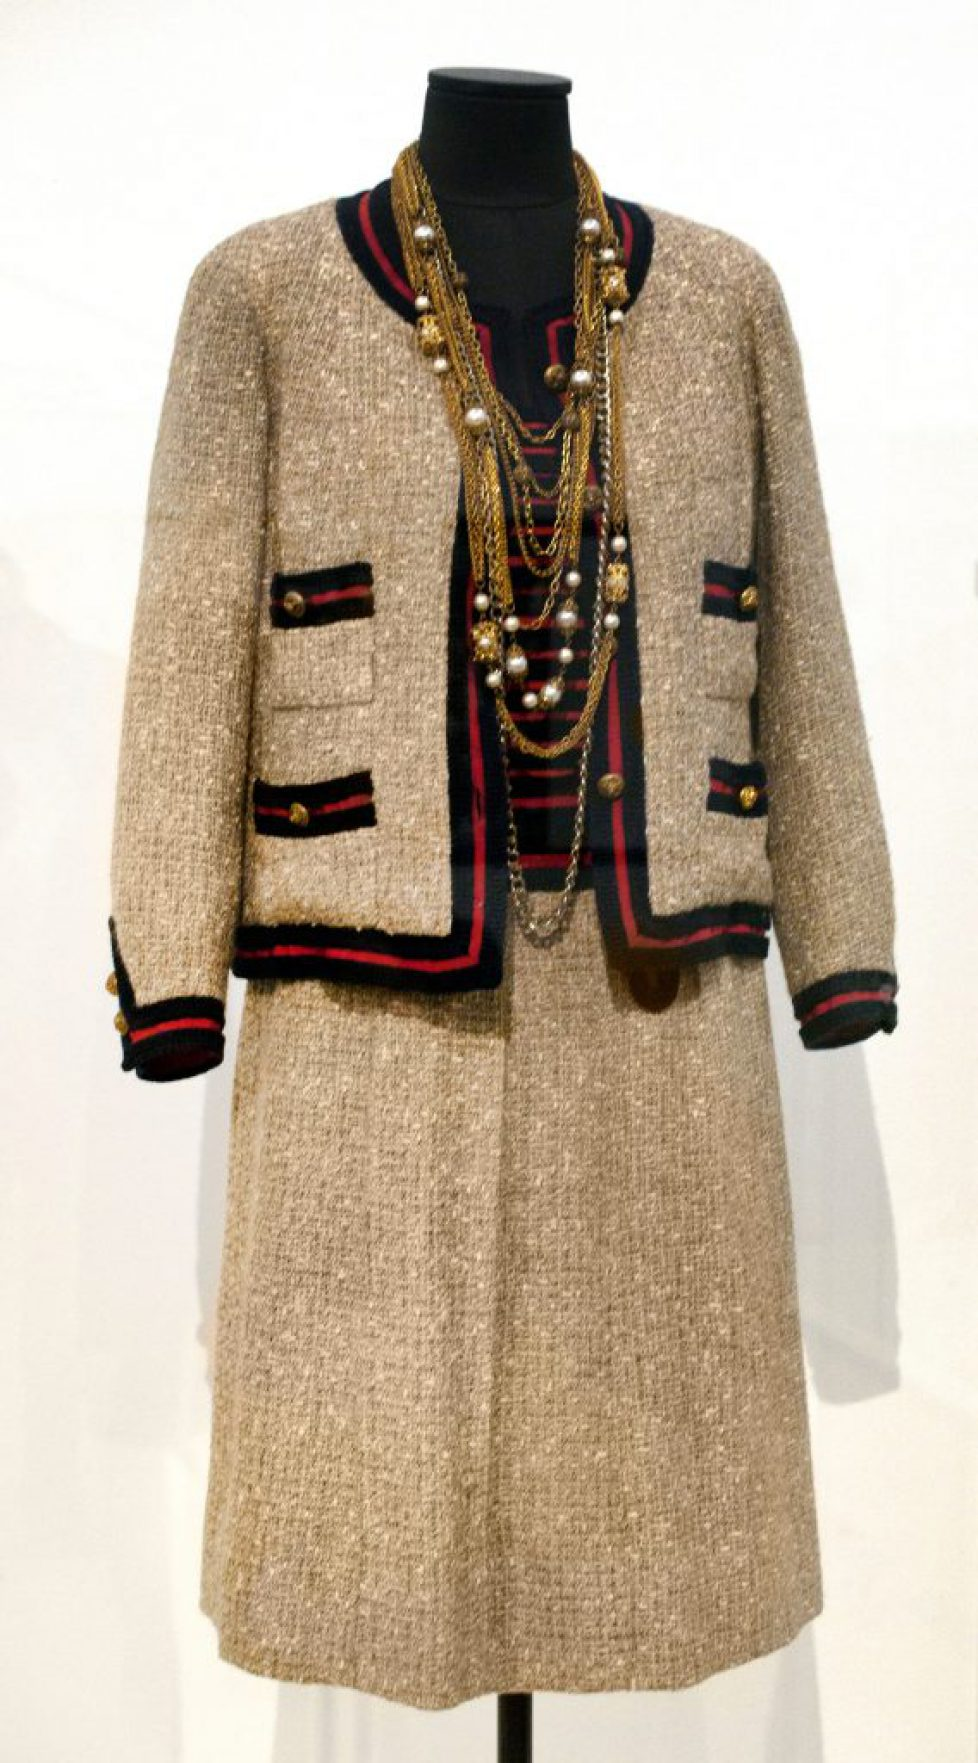 Gabrielle 1960 The garment worn by Queen Paola of Belgium Coco Chanel 1883 ? 1971 French fashion designer